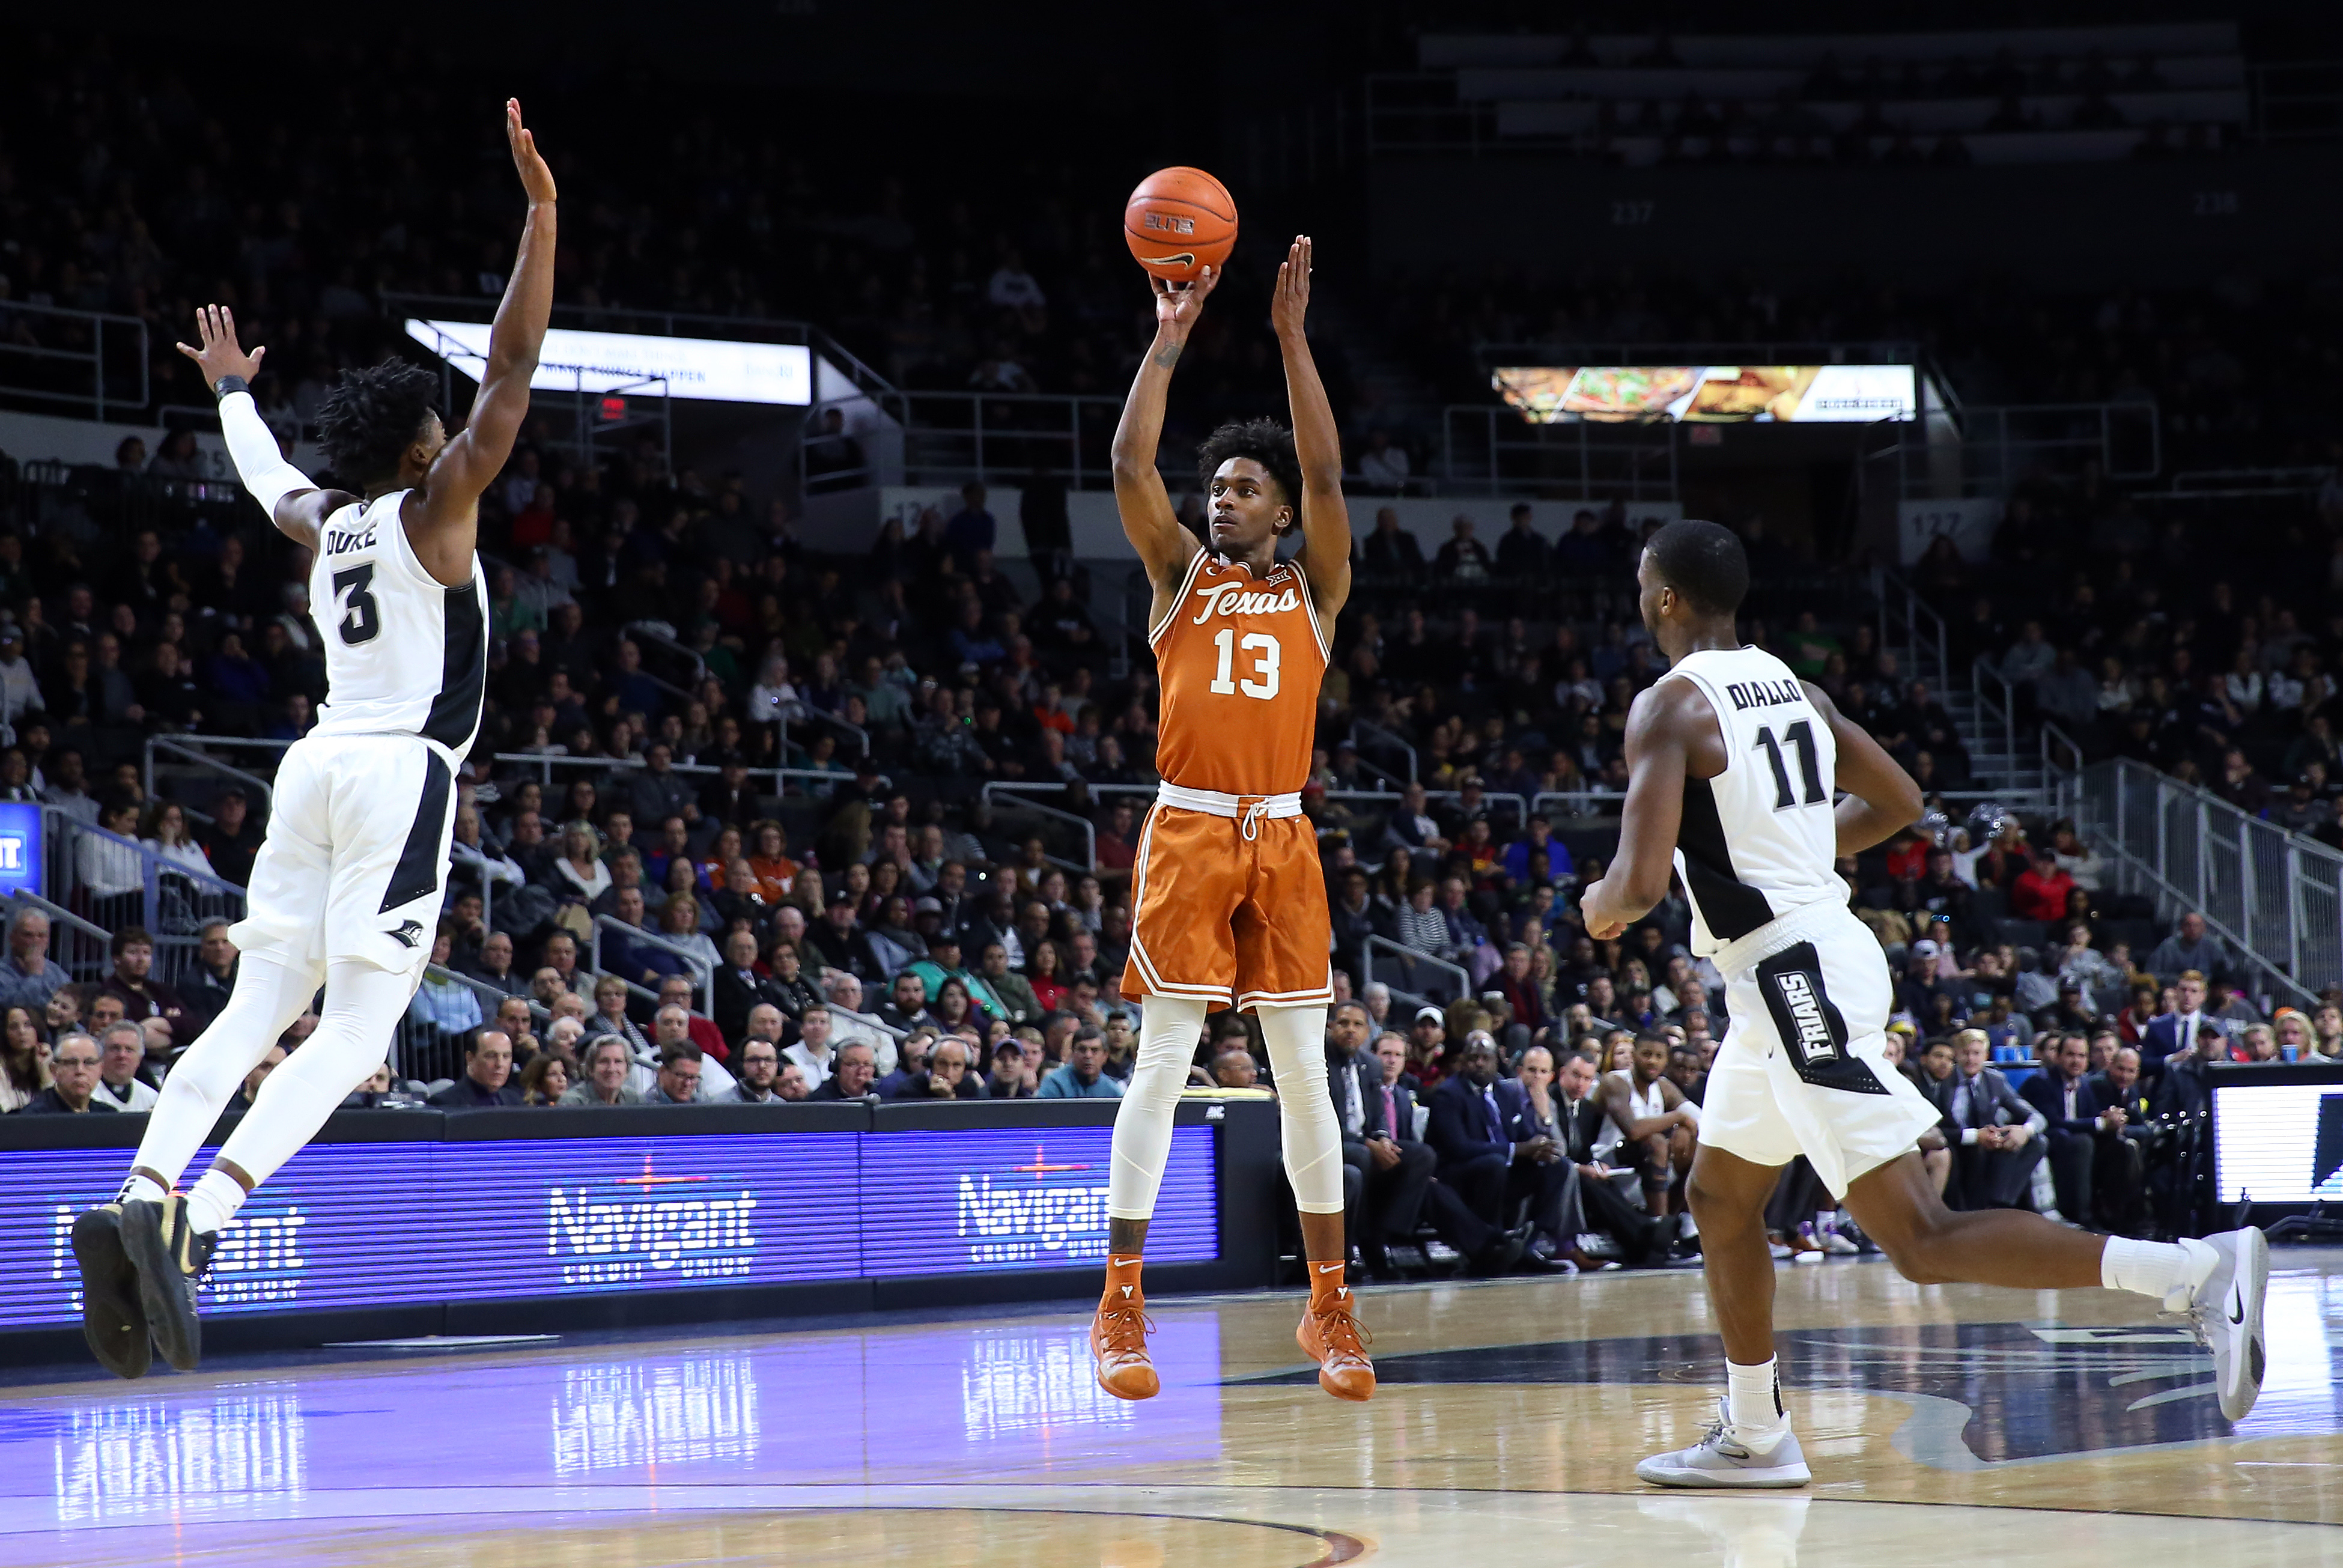 COLLEGE BASKETBALL: DEC 21 Texas at Providence